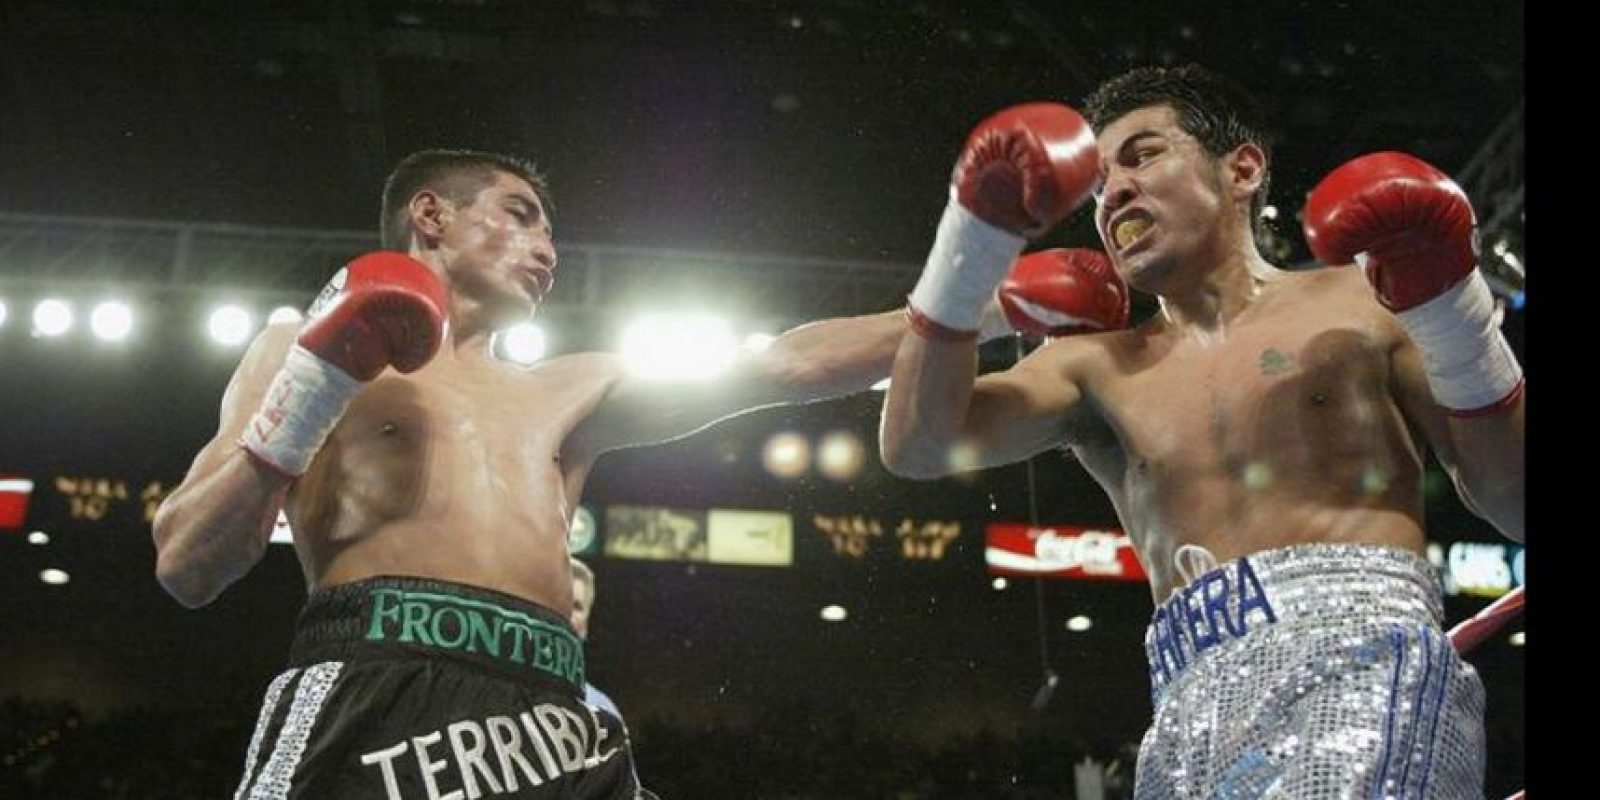 Marco Barrera vs. Erick Morales Foto: Getty